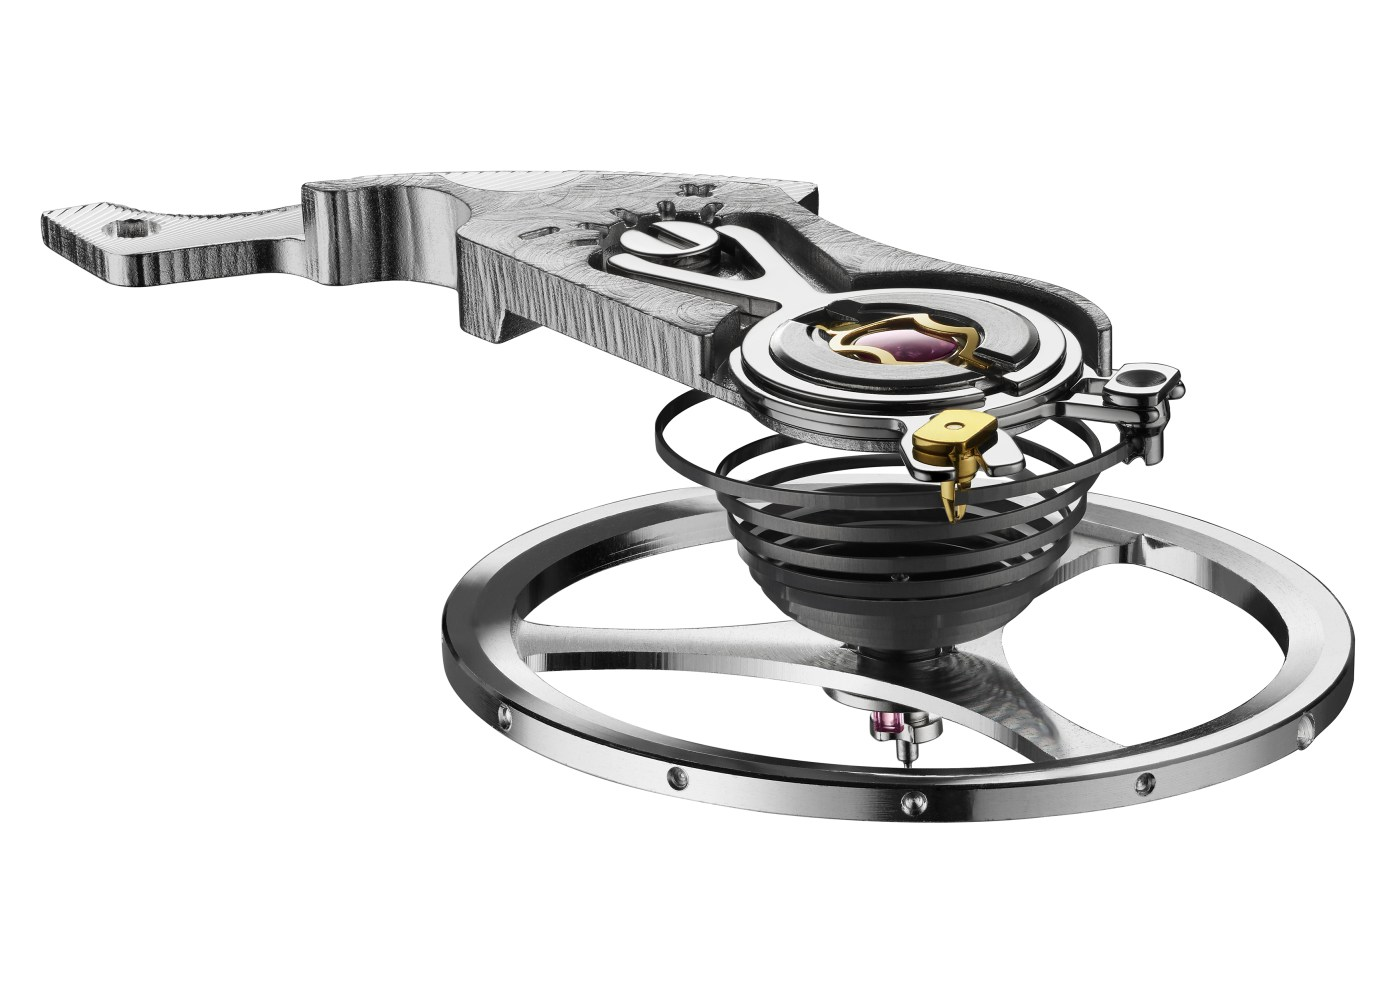 TAG Heuer Isograph carbonfiber hairspring